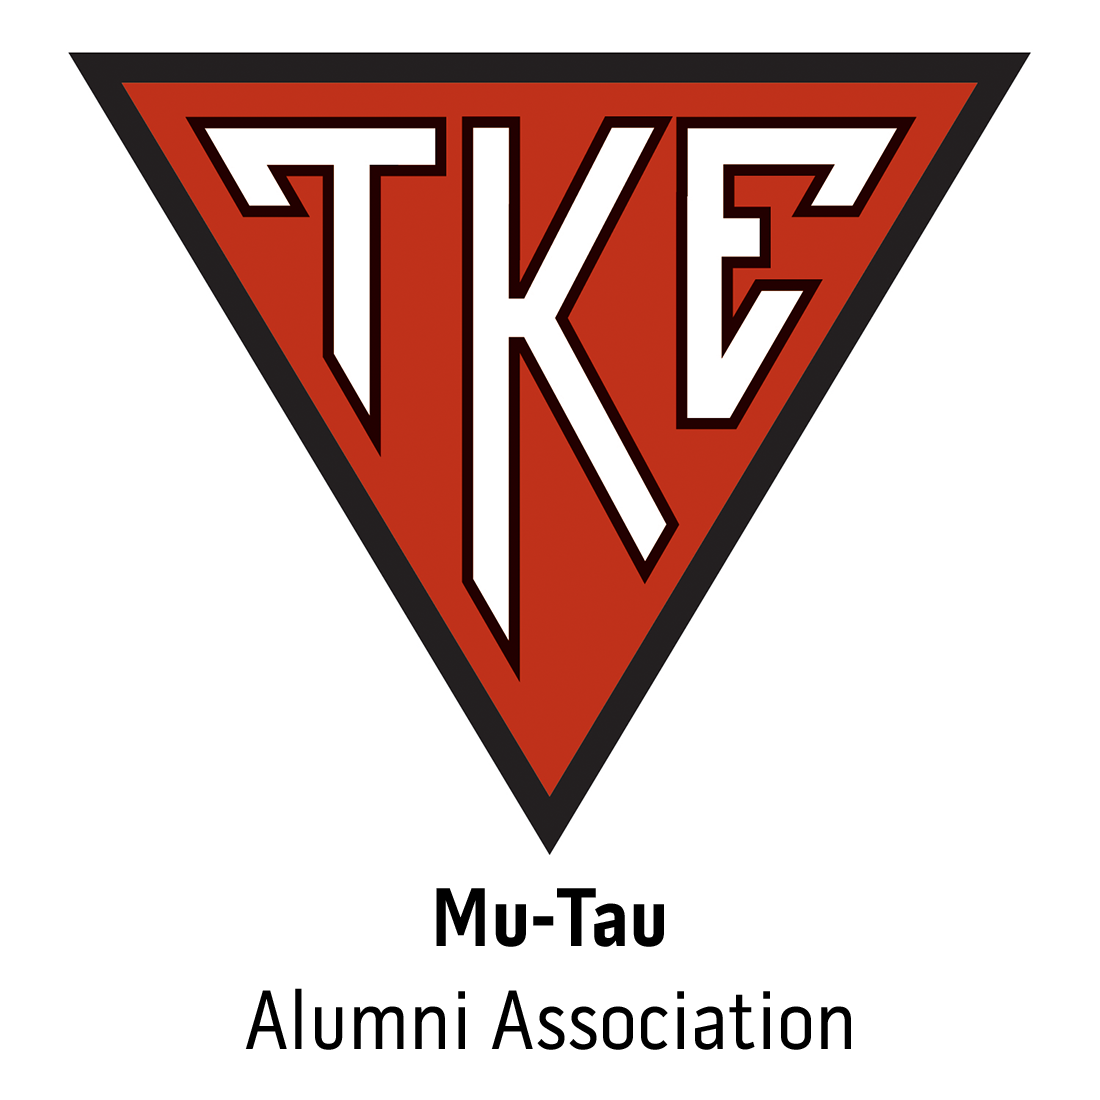 Mu-Tau Alumni Association at James Madison University